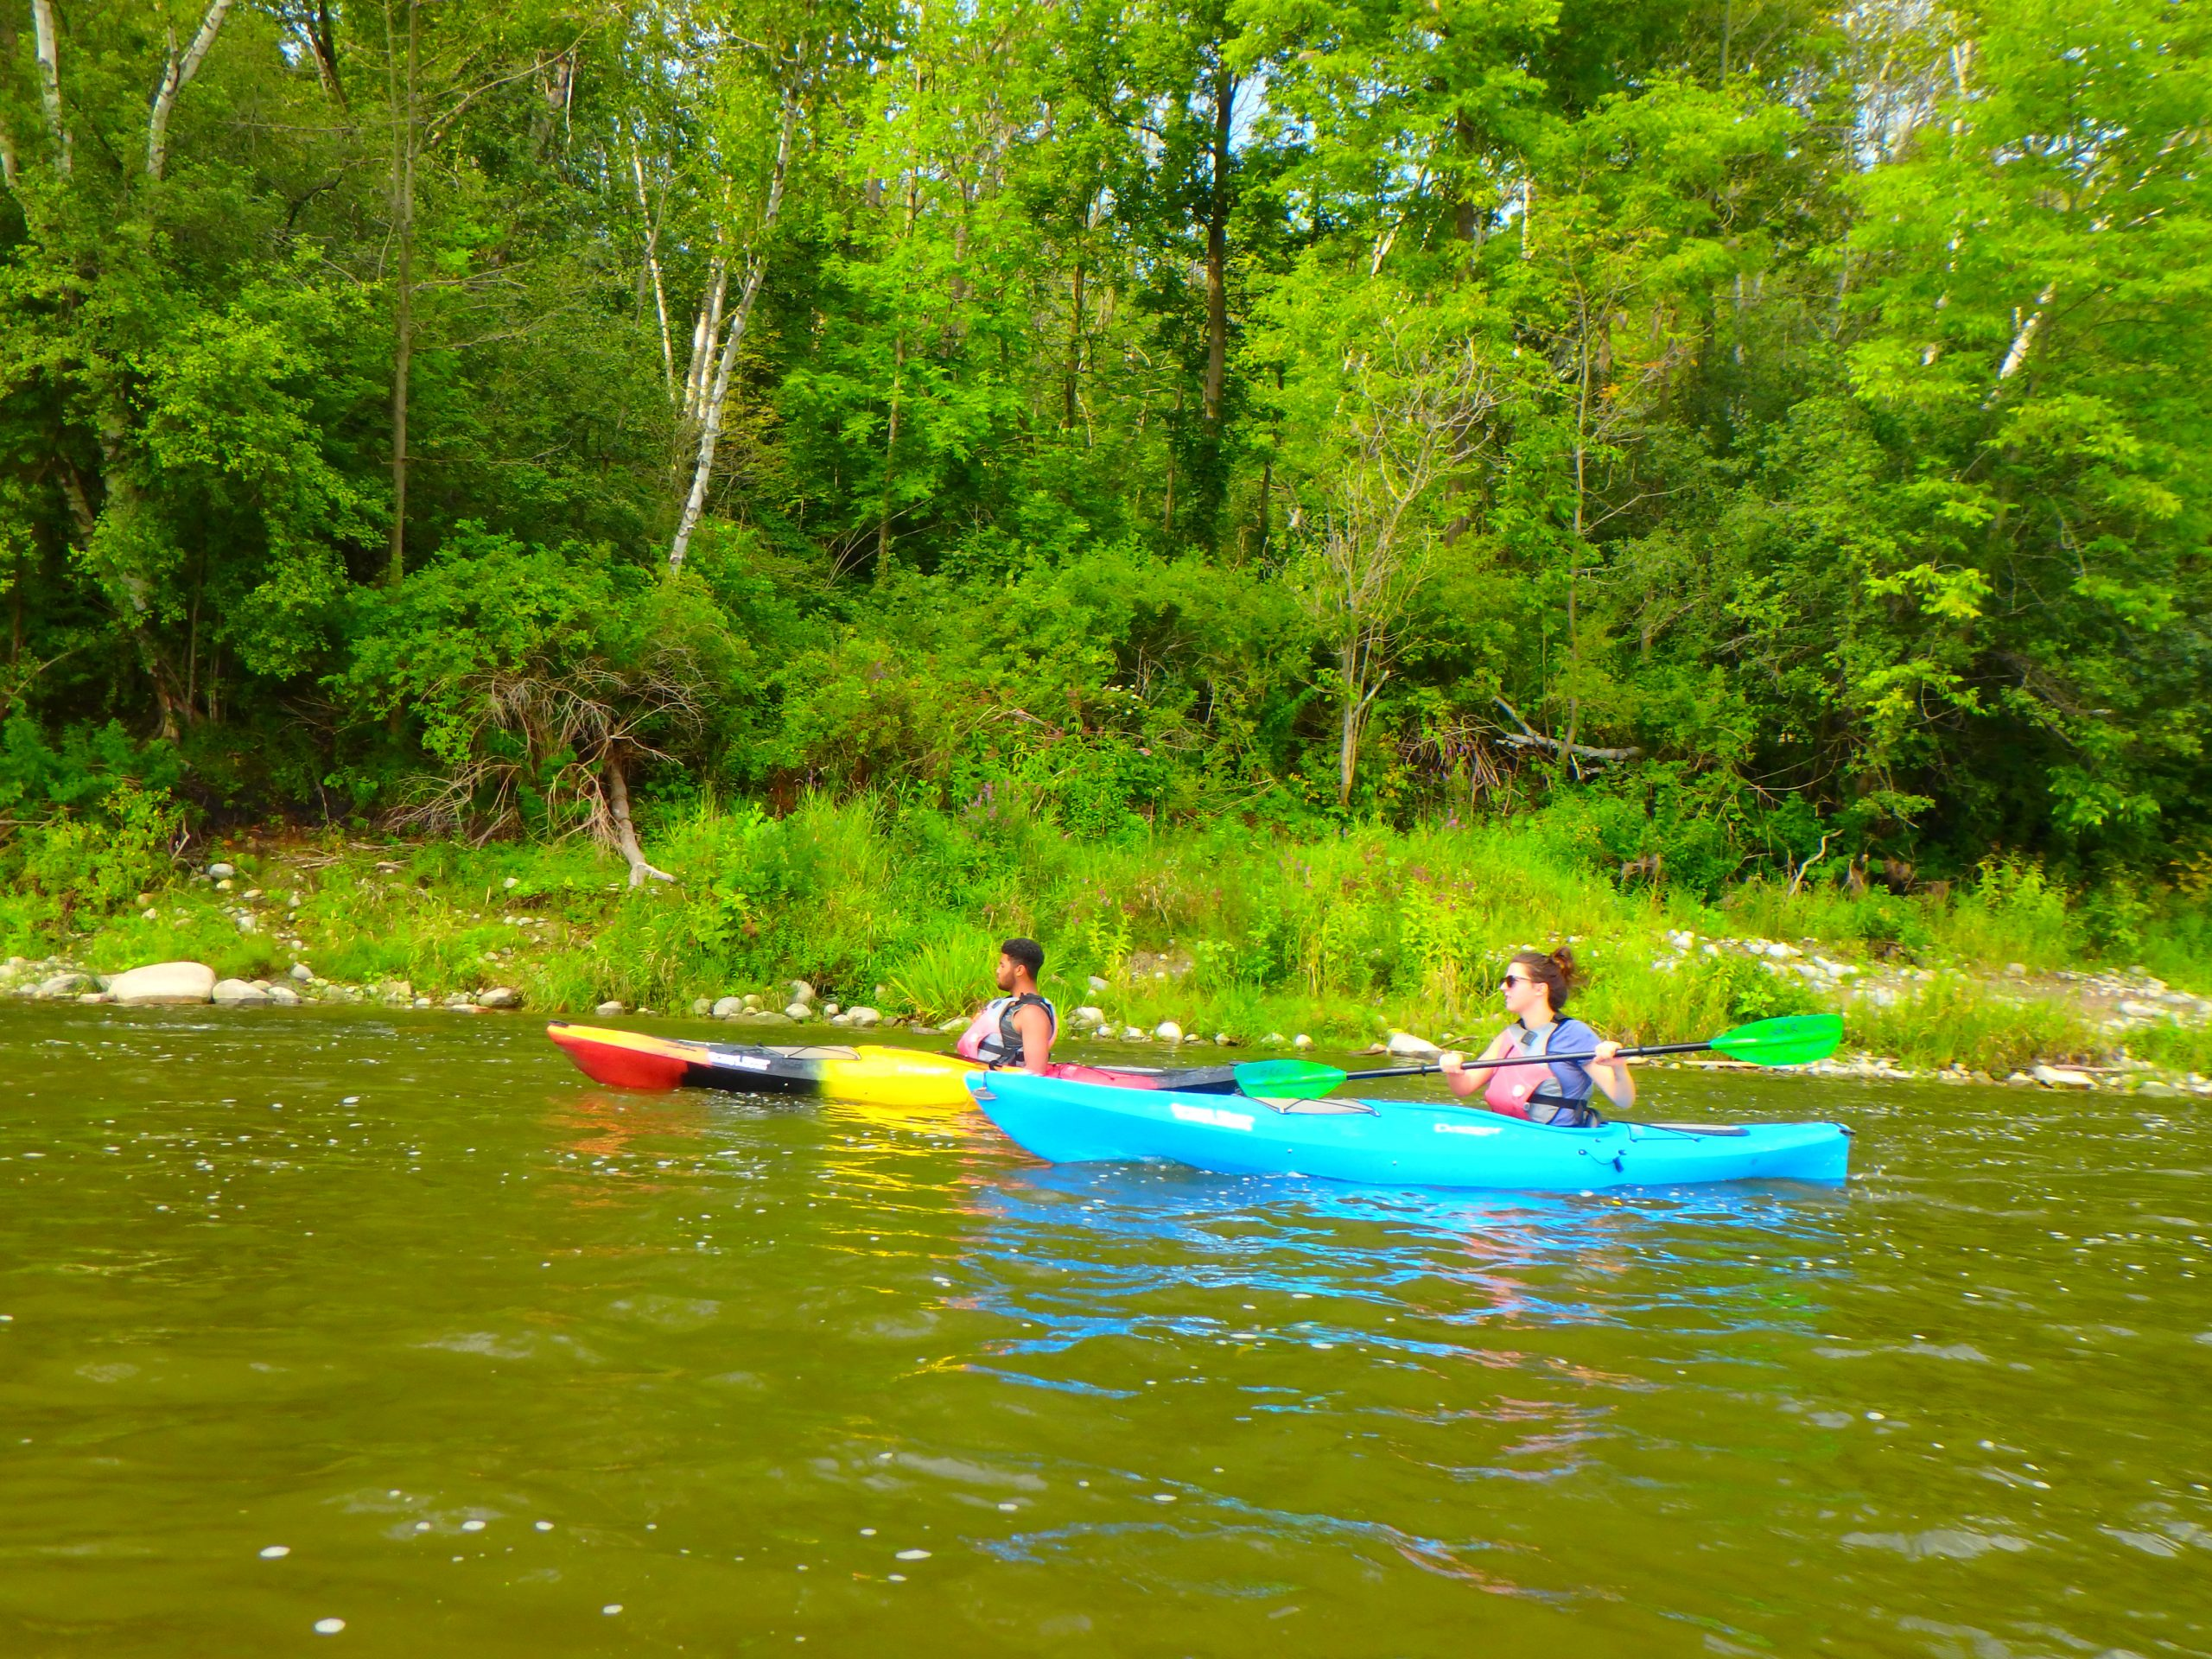 Kayaking, Yoga & Meditation - August 28, 2018-1301